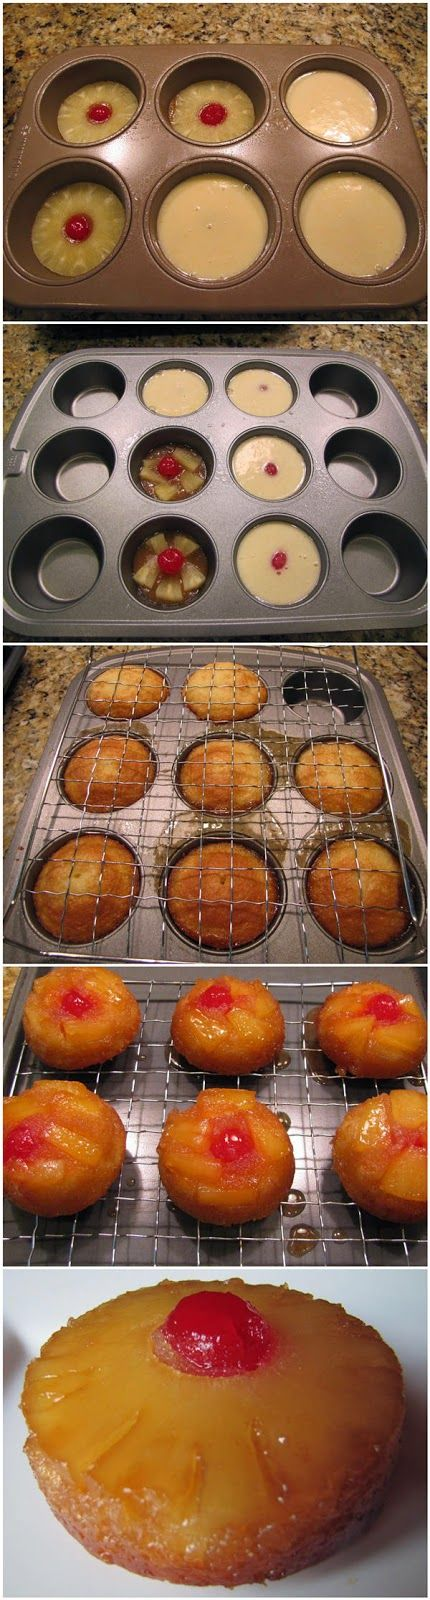 Mini Pineapple Upside Down Cakes- Super yummy! Everyone loved them!